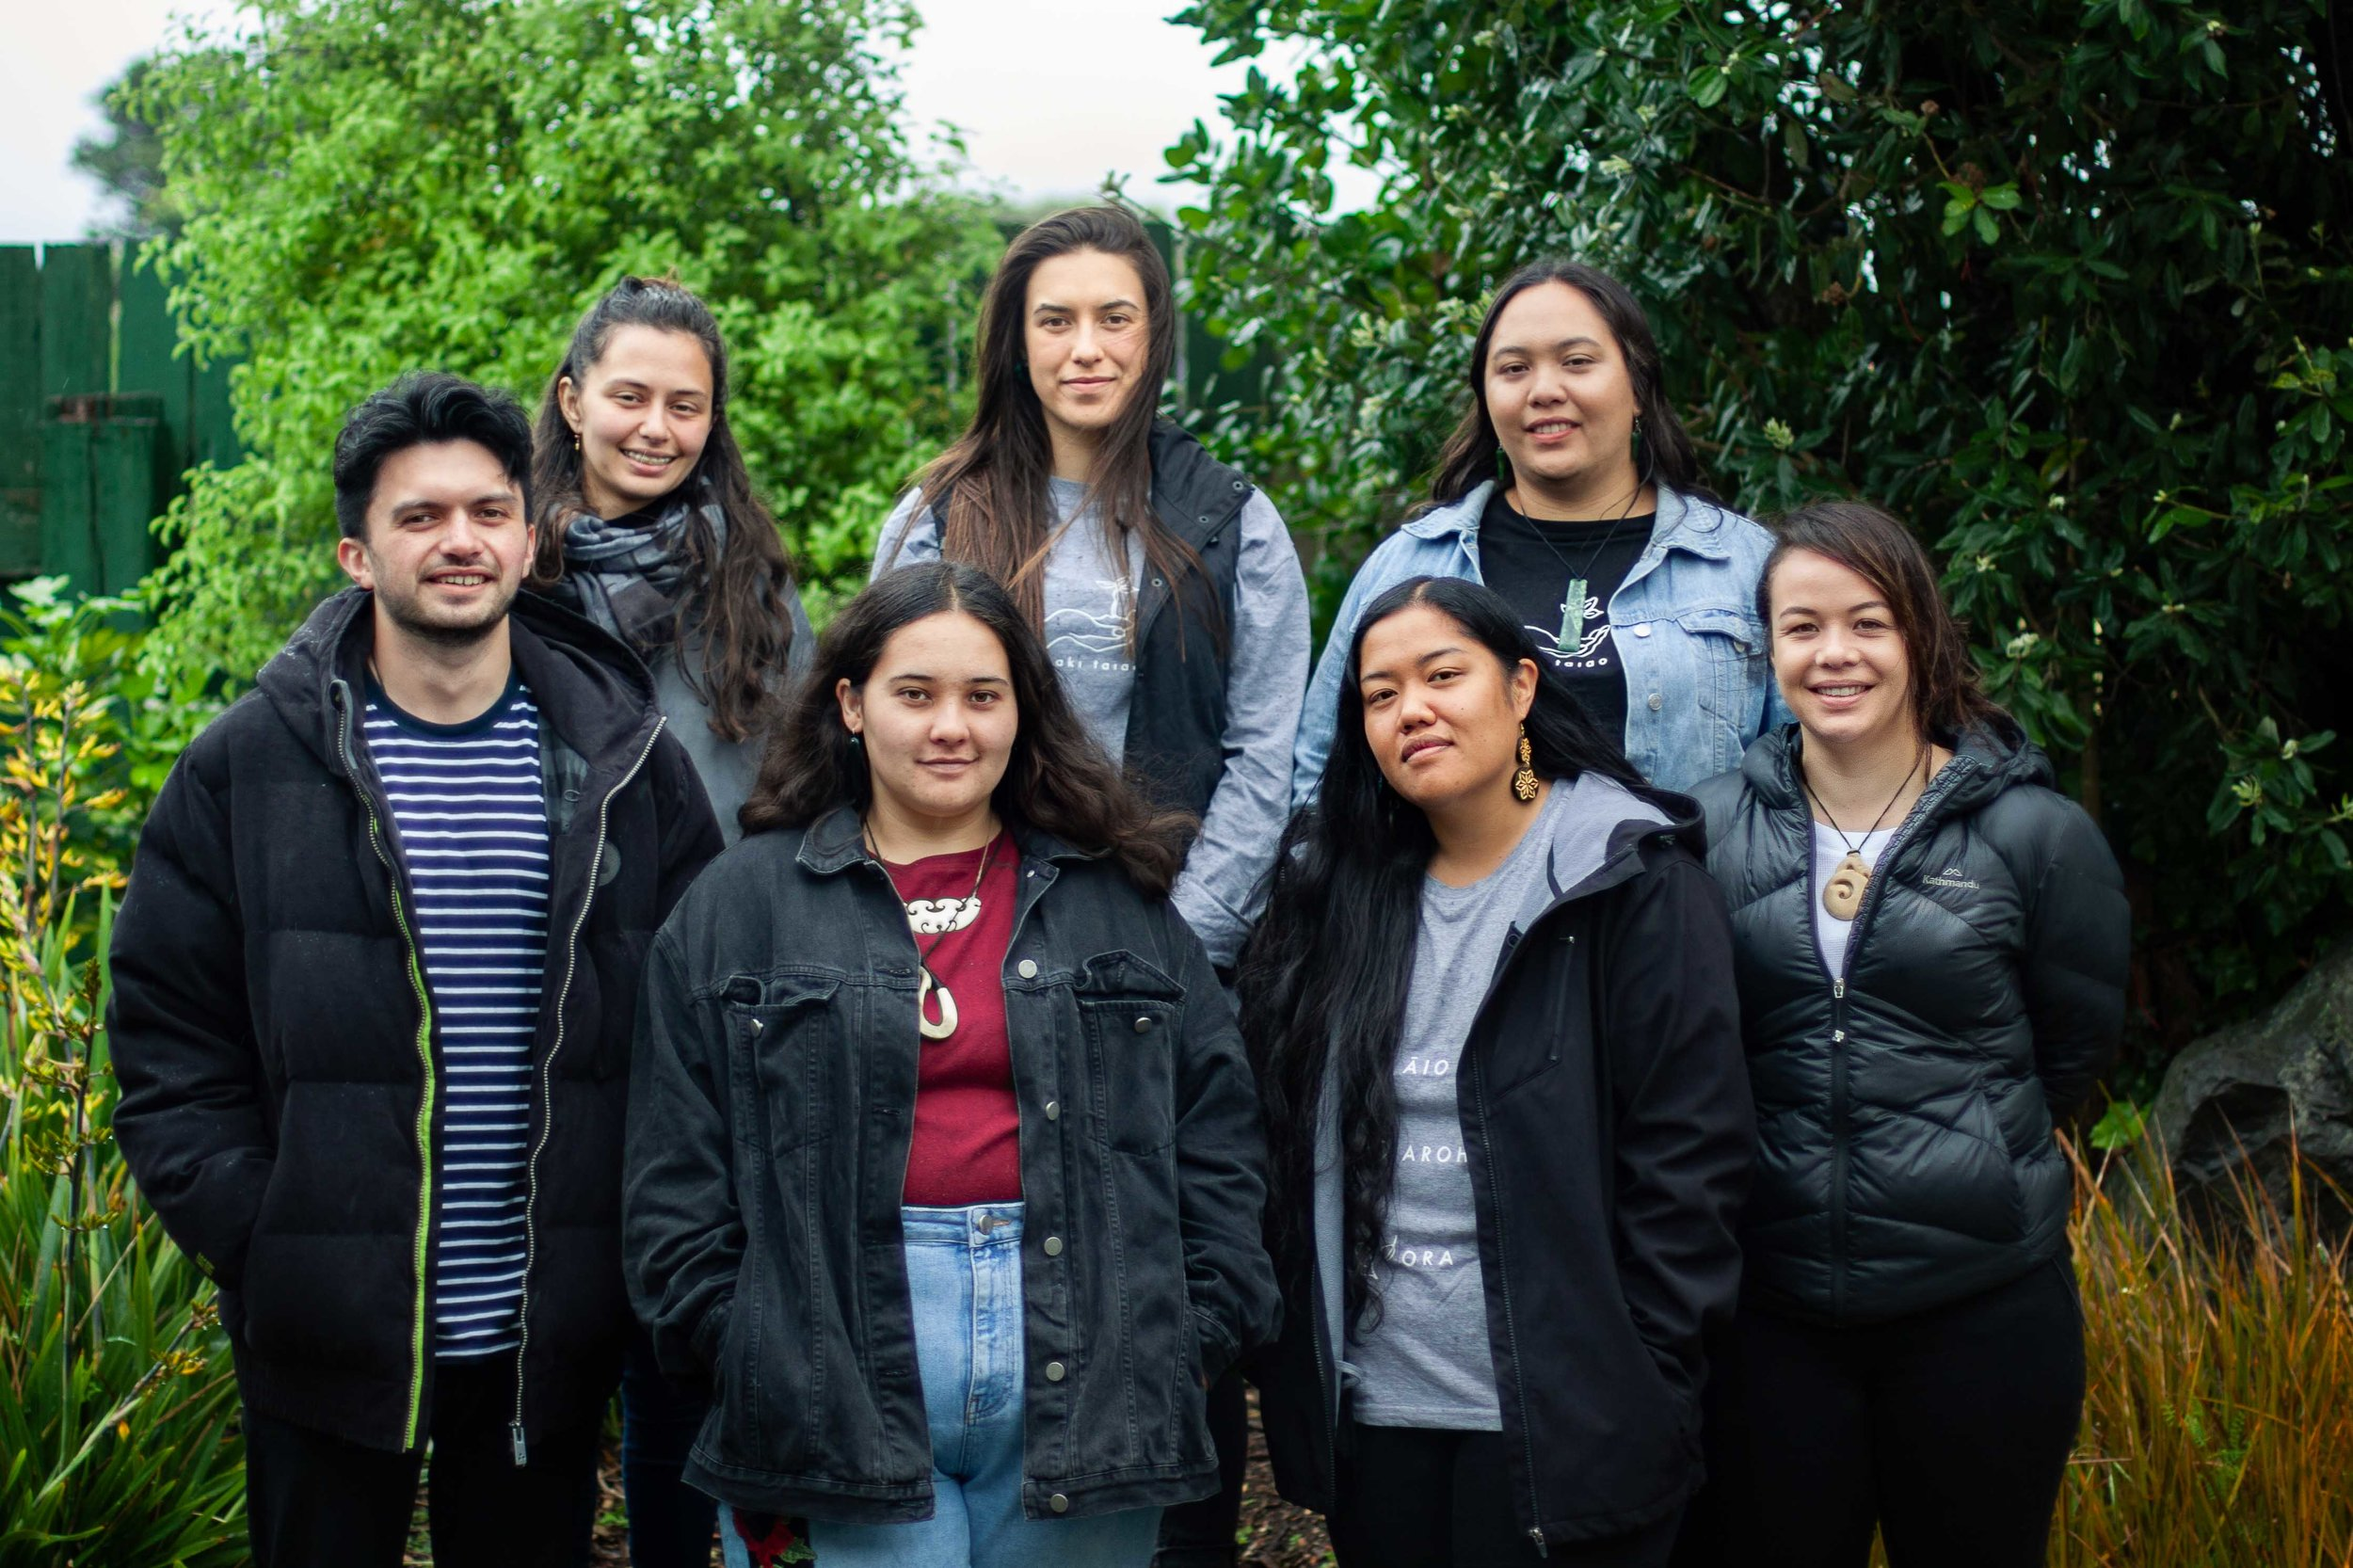 L — R: Kaeden Watts, India Logan-Riley, Nakia Randle, Nevada Huaki-Foote, Annie Te One, Hana Teipo, Kahu Kutia